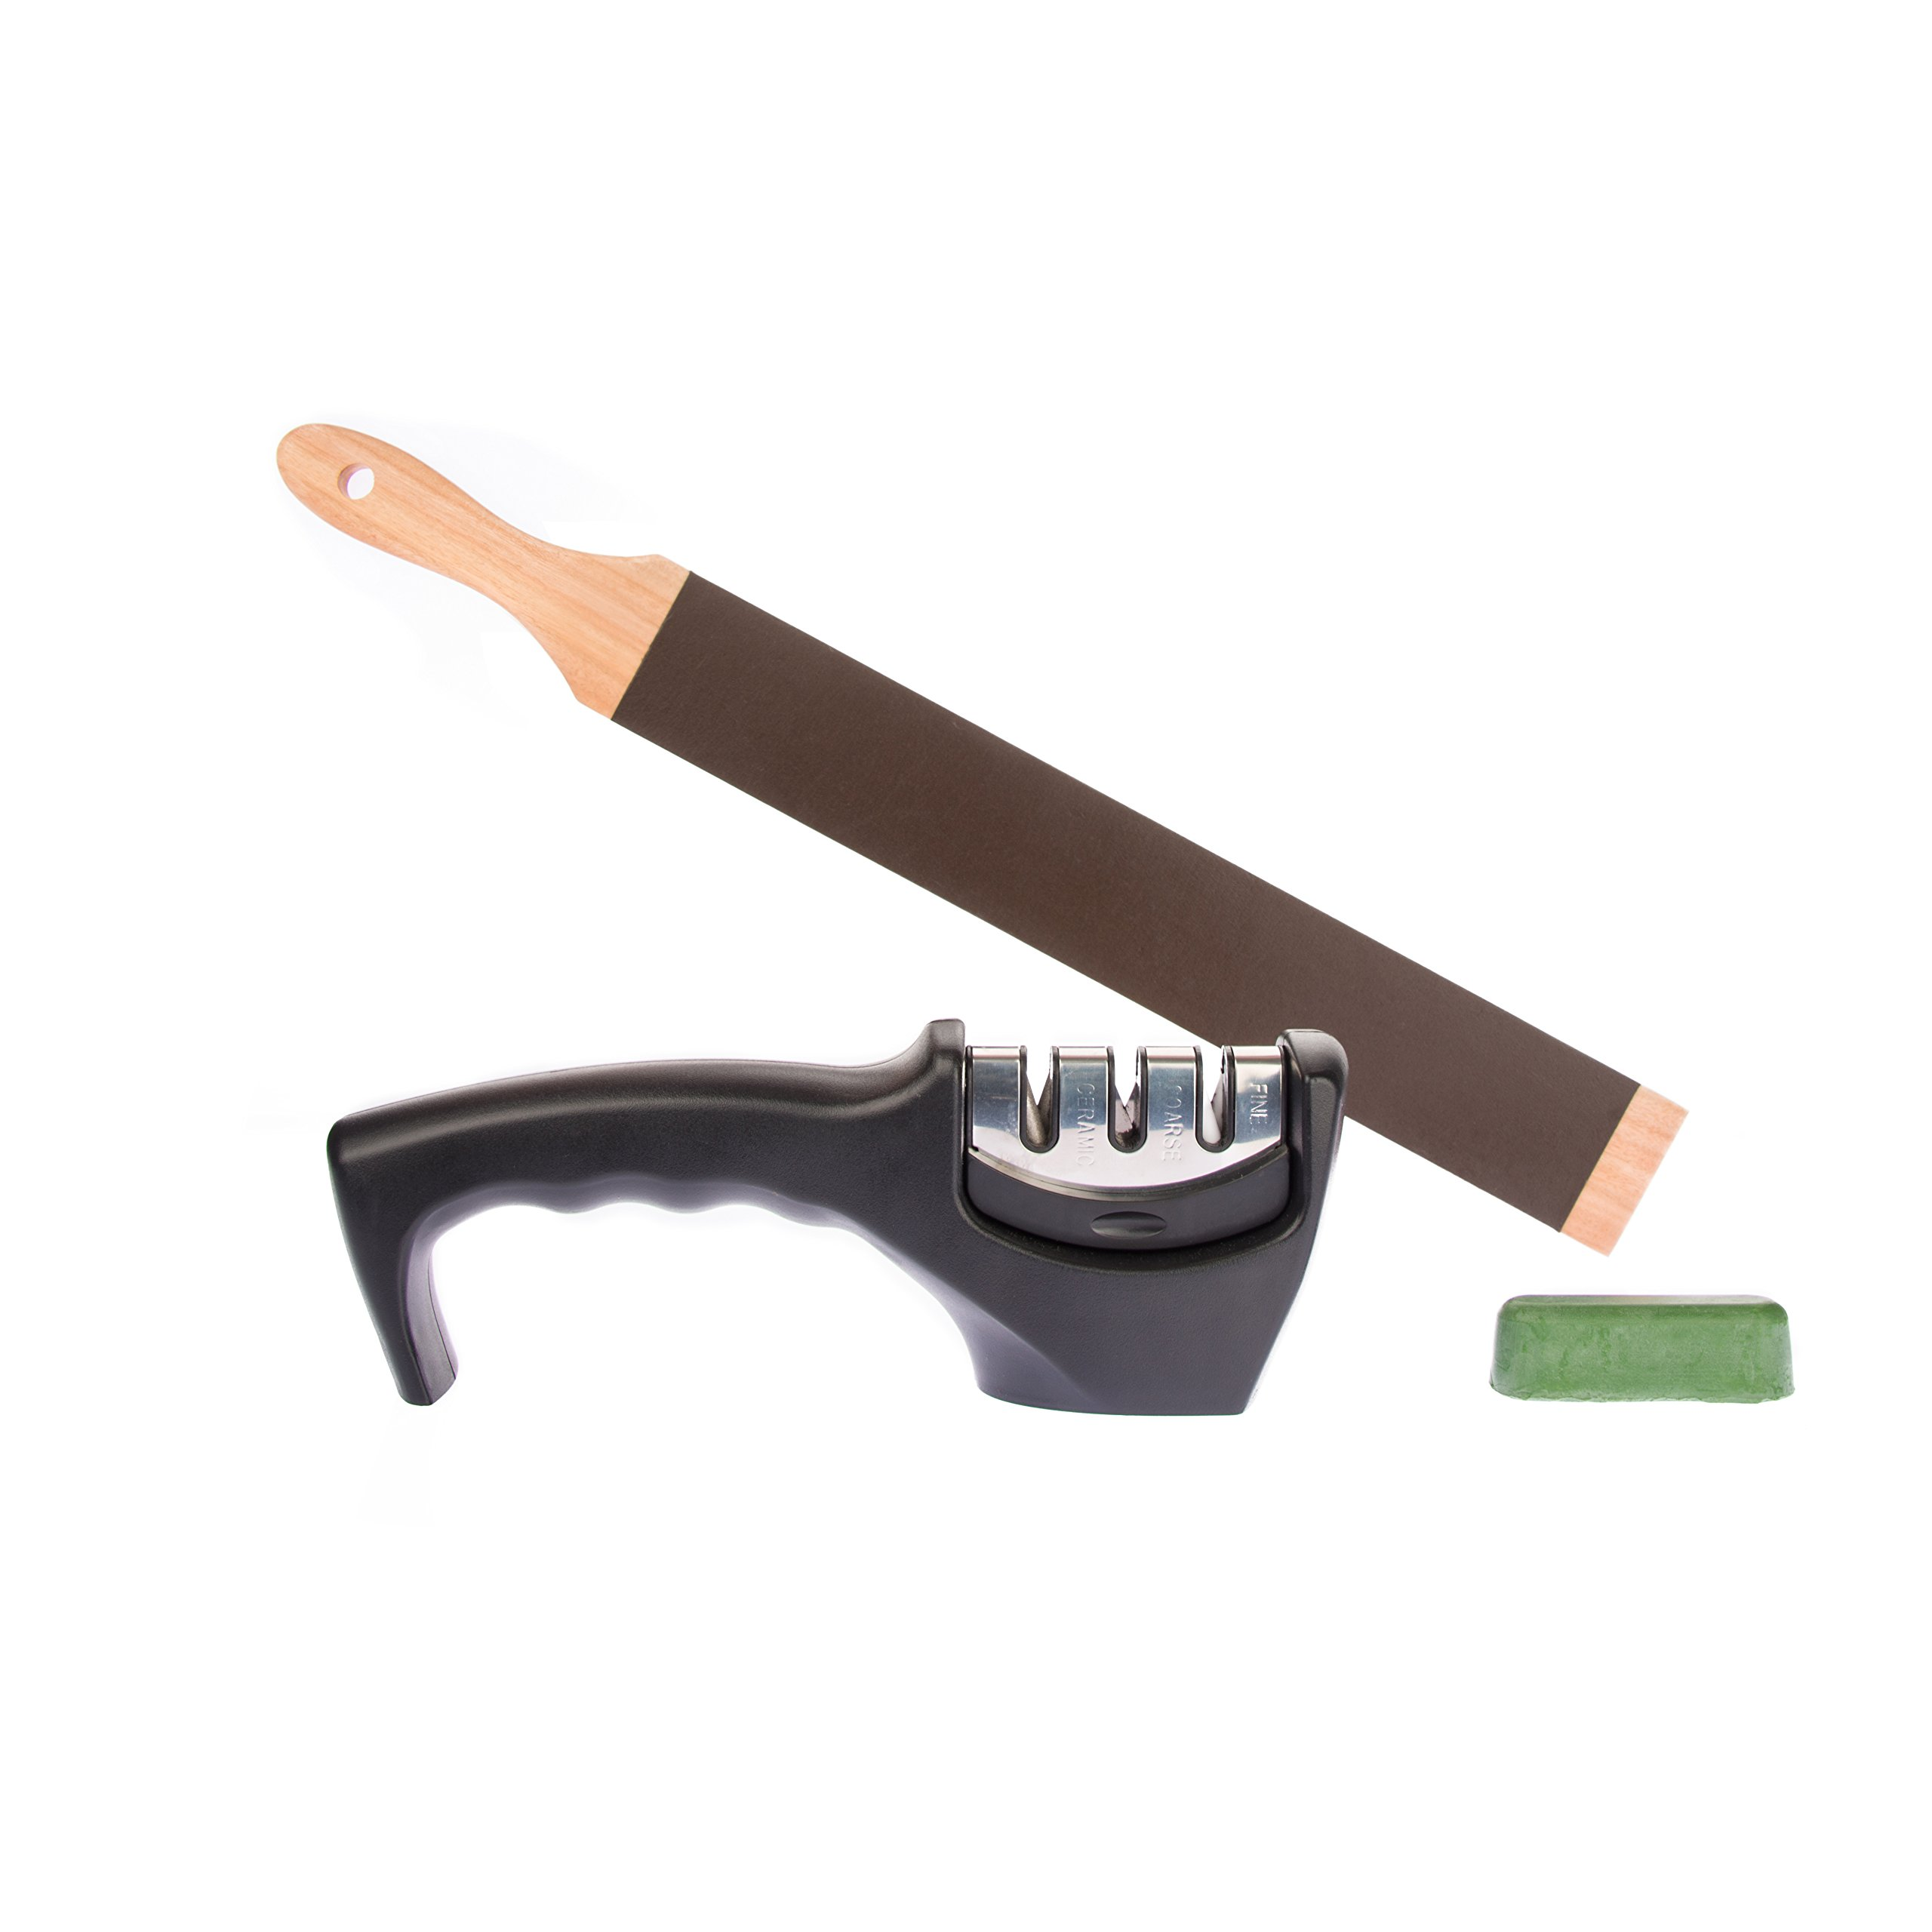 Edgewise Kitchens 3 Stage  Kitchen Knife Sharpener Kit with Wooden Paddle Strop and 8000 Grit Green Honing Compound.